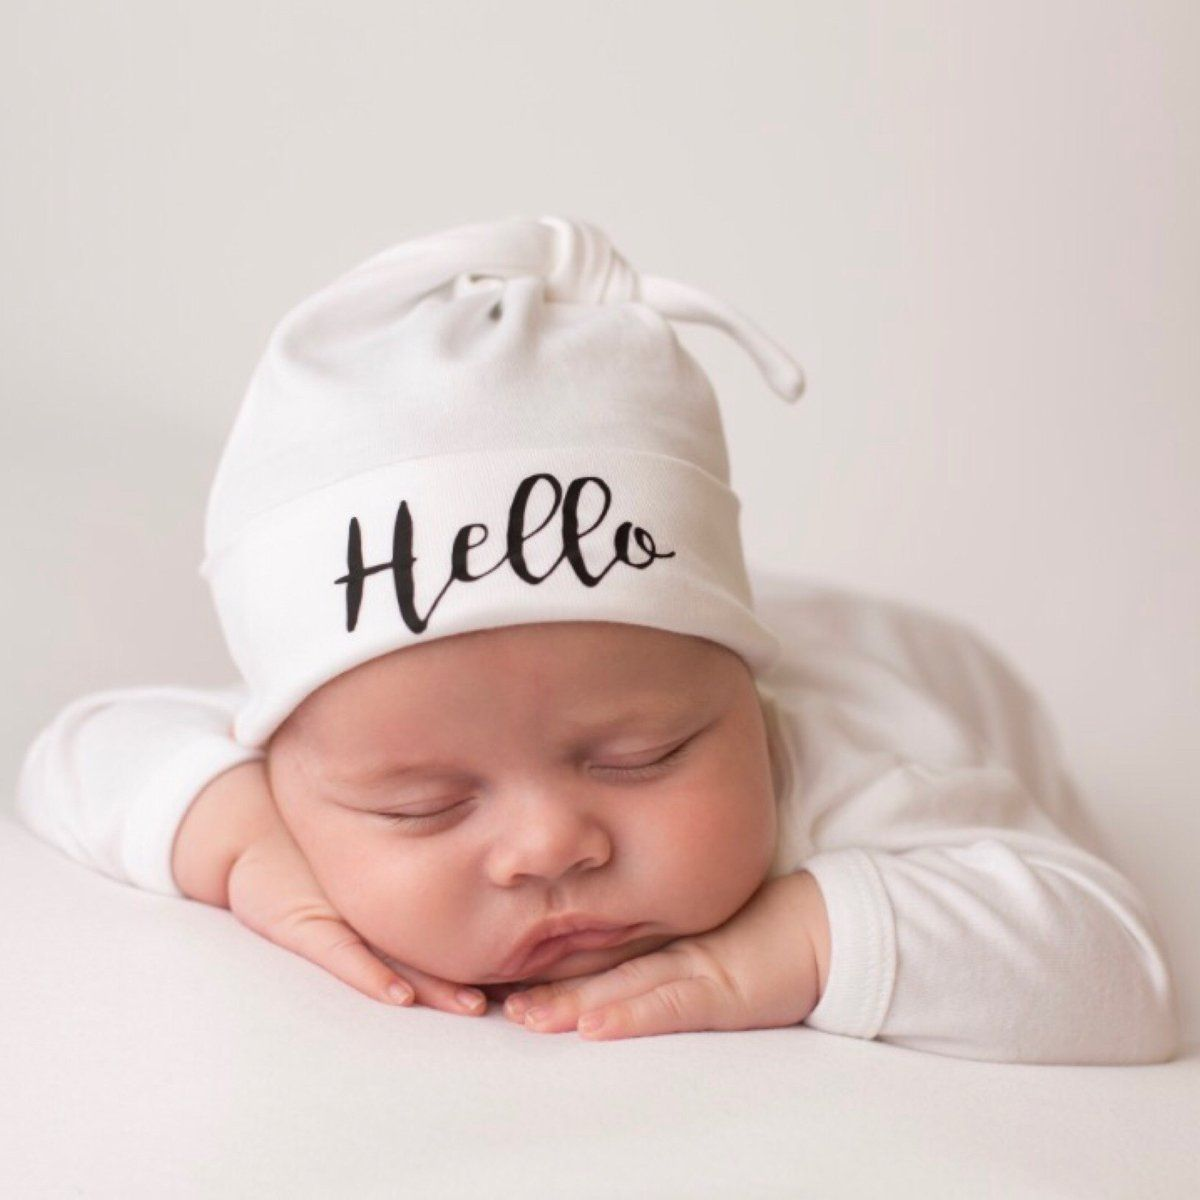 35bbdf98101 The cutest little personalised baby hat for your newborn babies arrival  also a beautiful baby keepsake. Great for those 1st photos to share with  your family ...